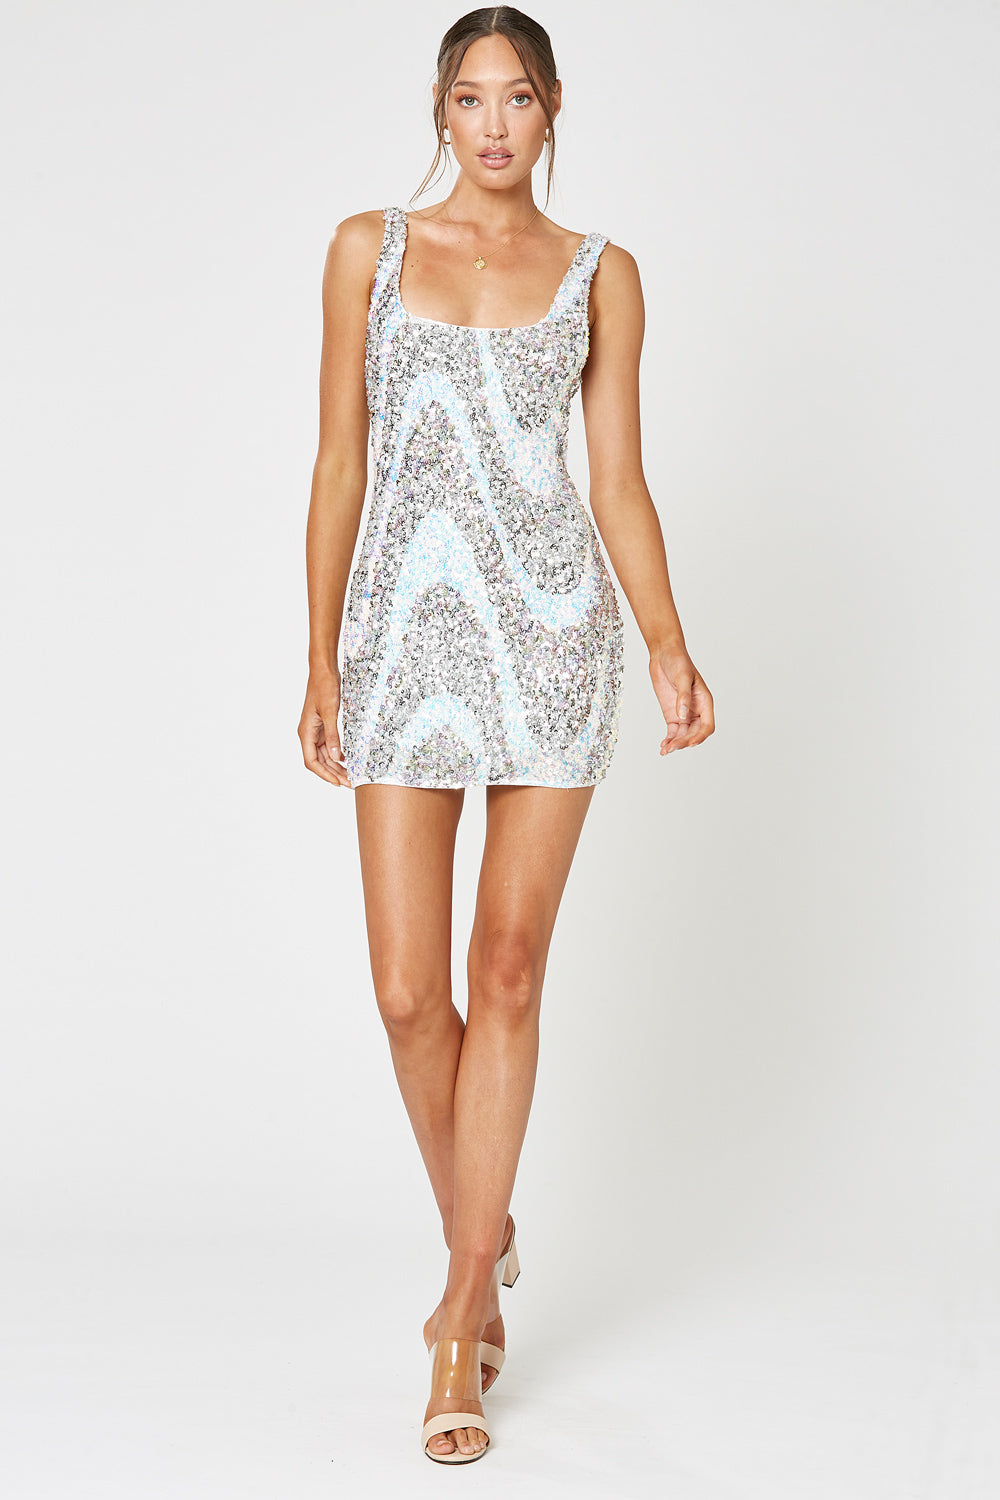 RHAPSODY MINI DRESS